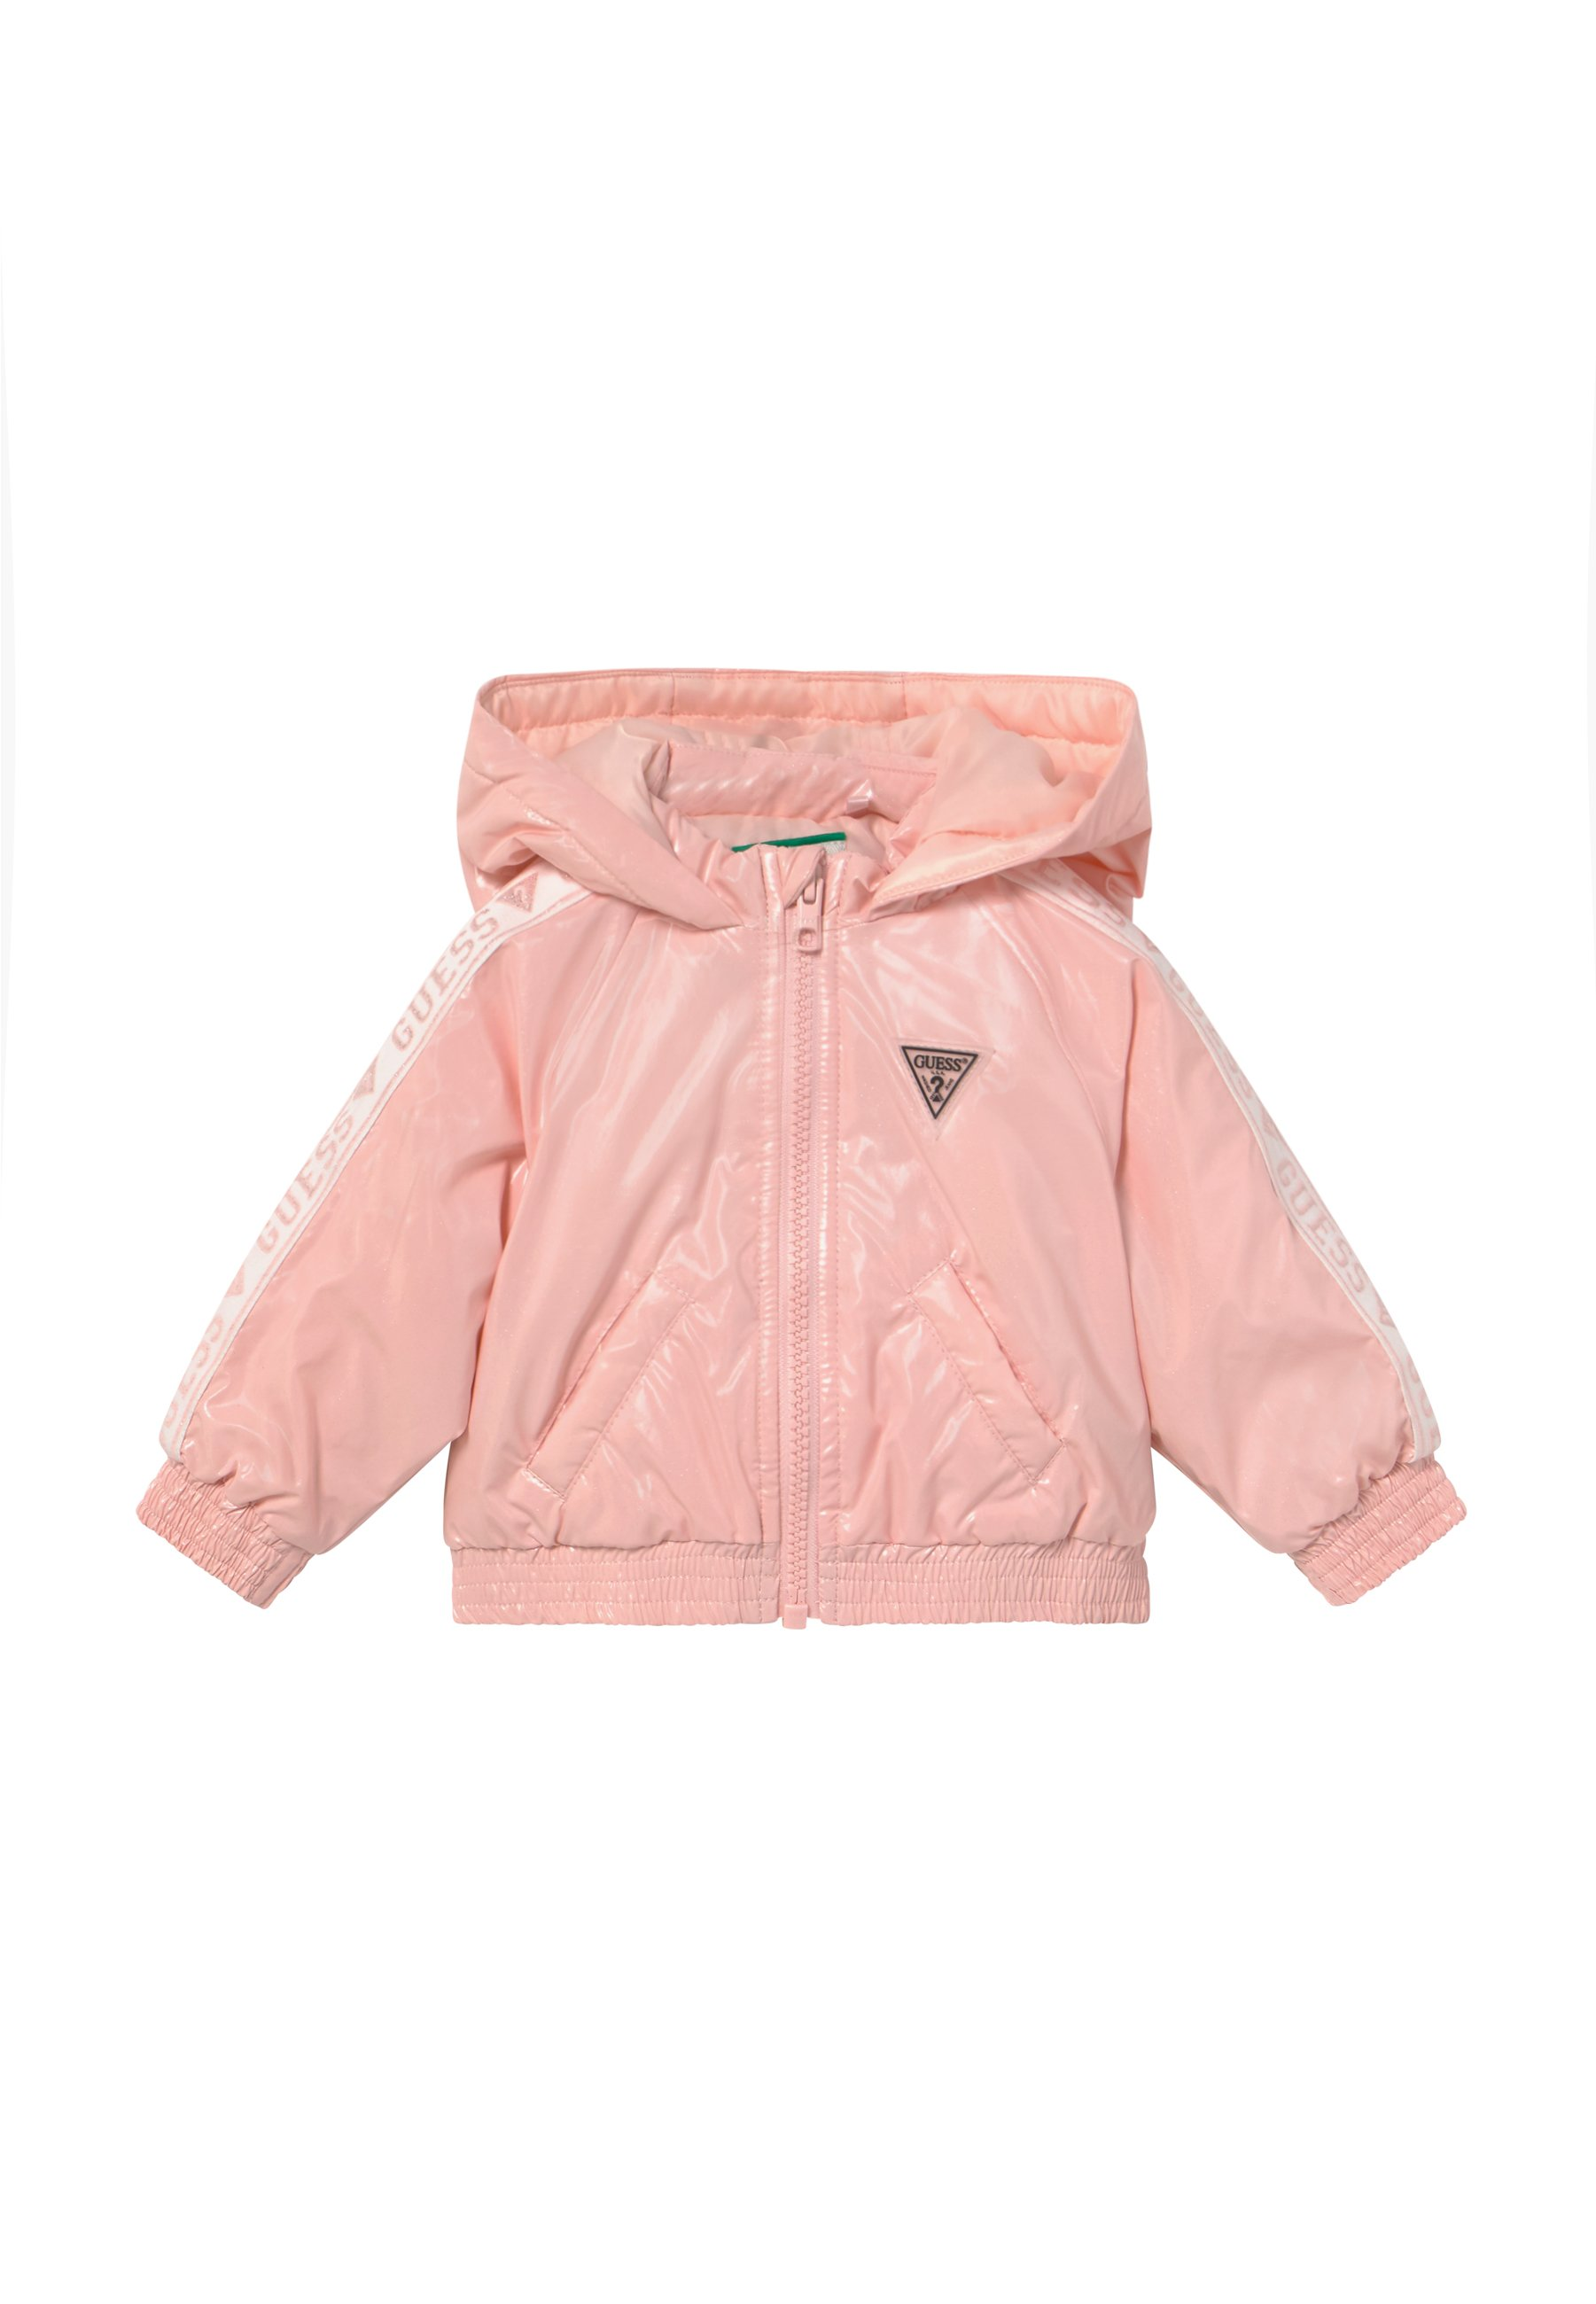 2013 Wholesale Guess HOODED ZIPPER BABY - Winter jacket - pink sky | kids's clothing 2020 Lg95V